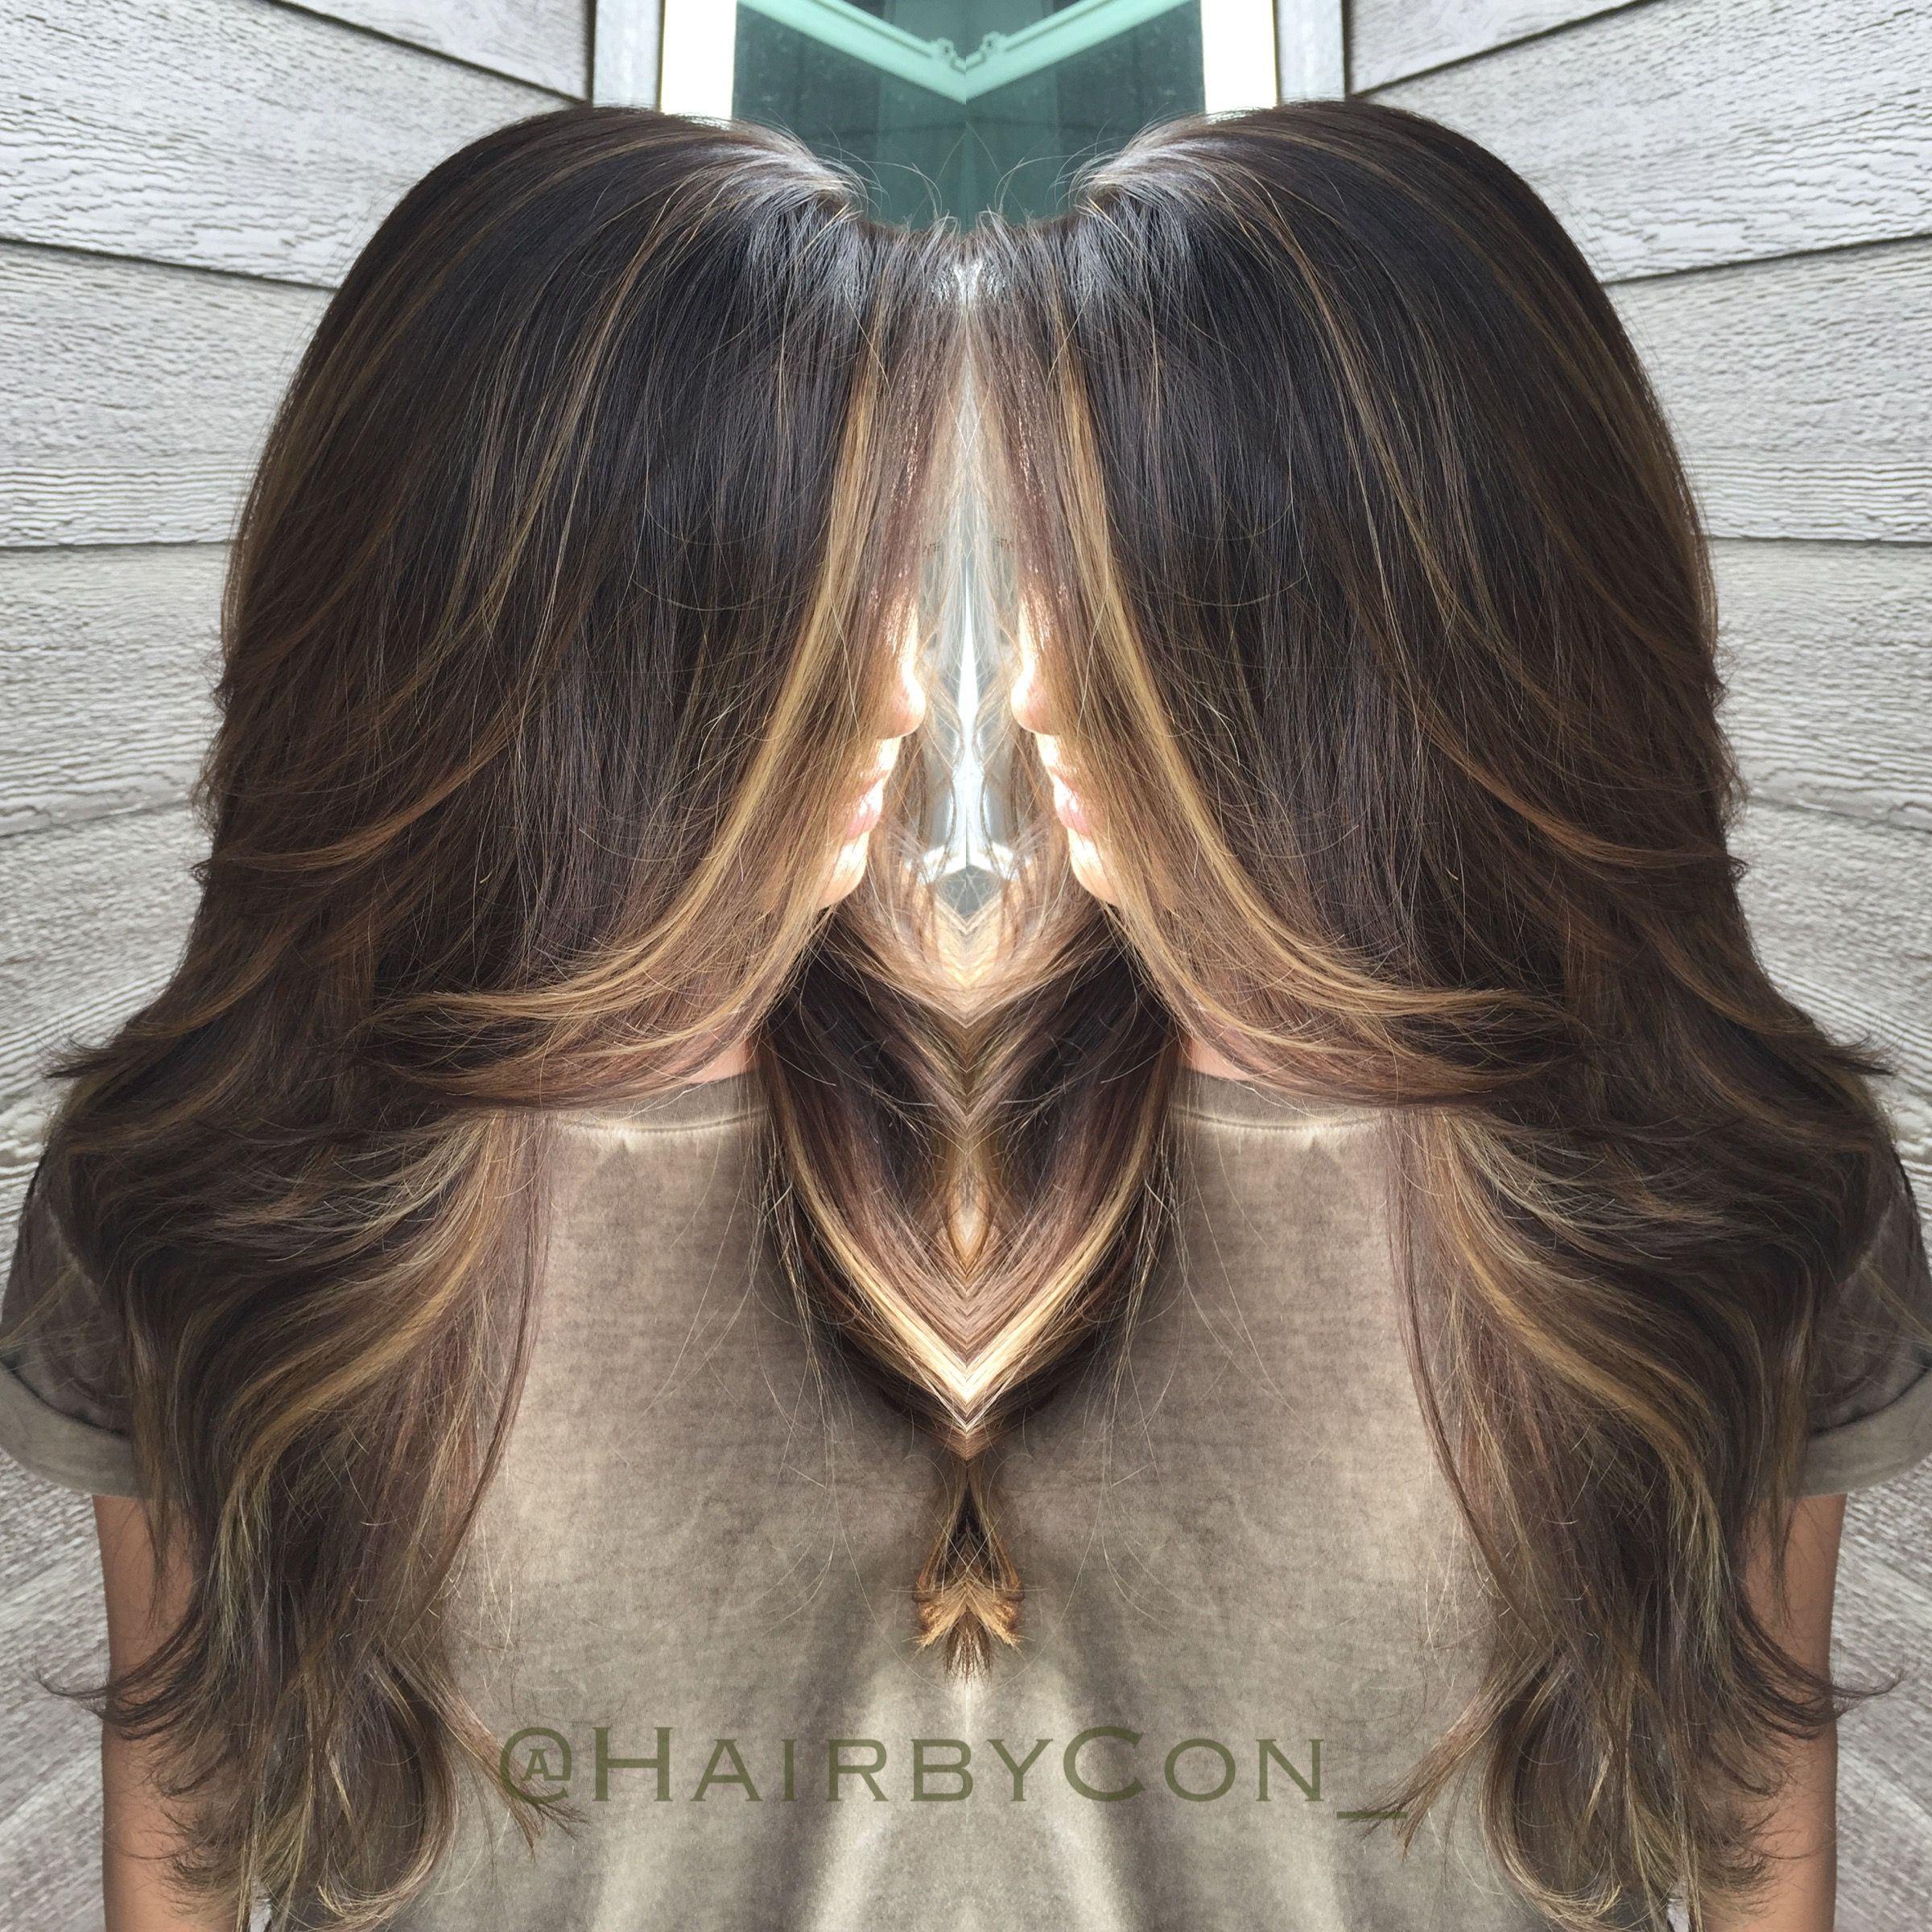 Pin On Hair By Con